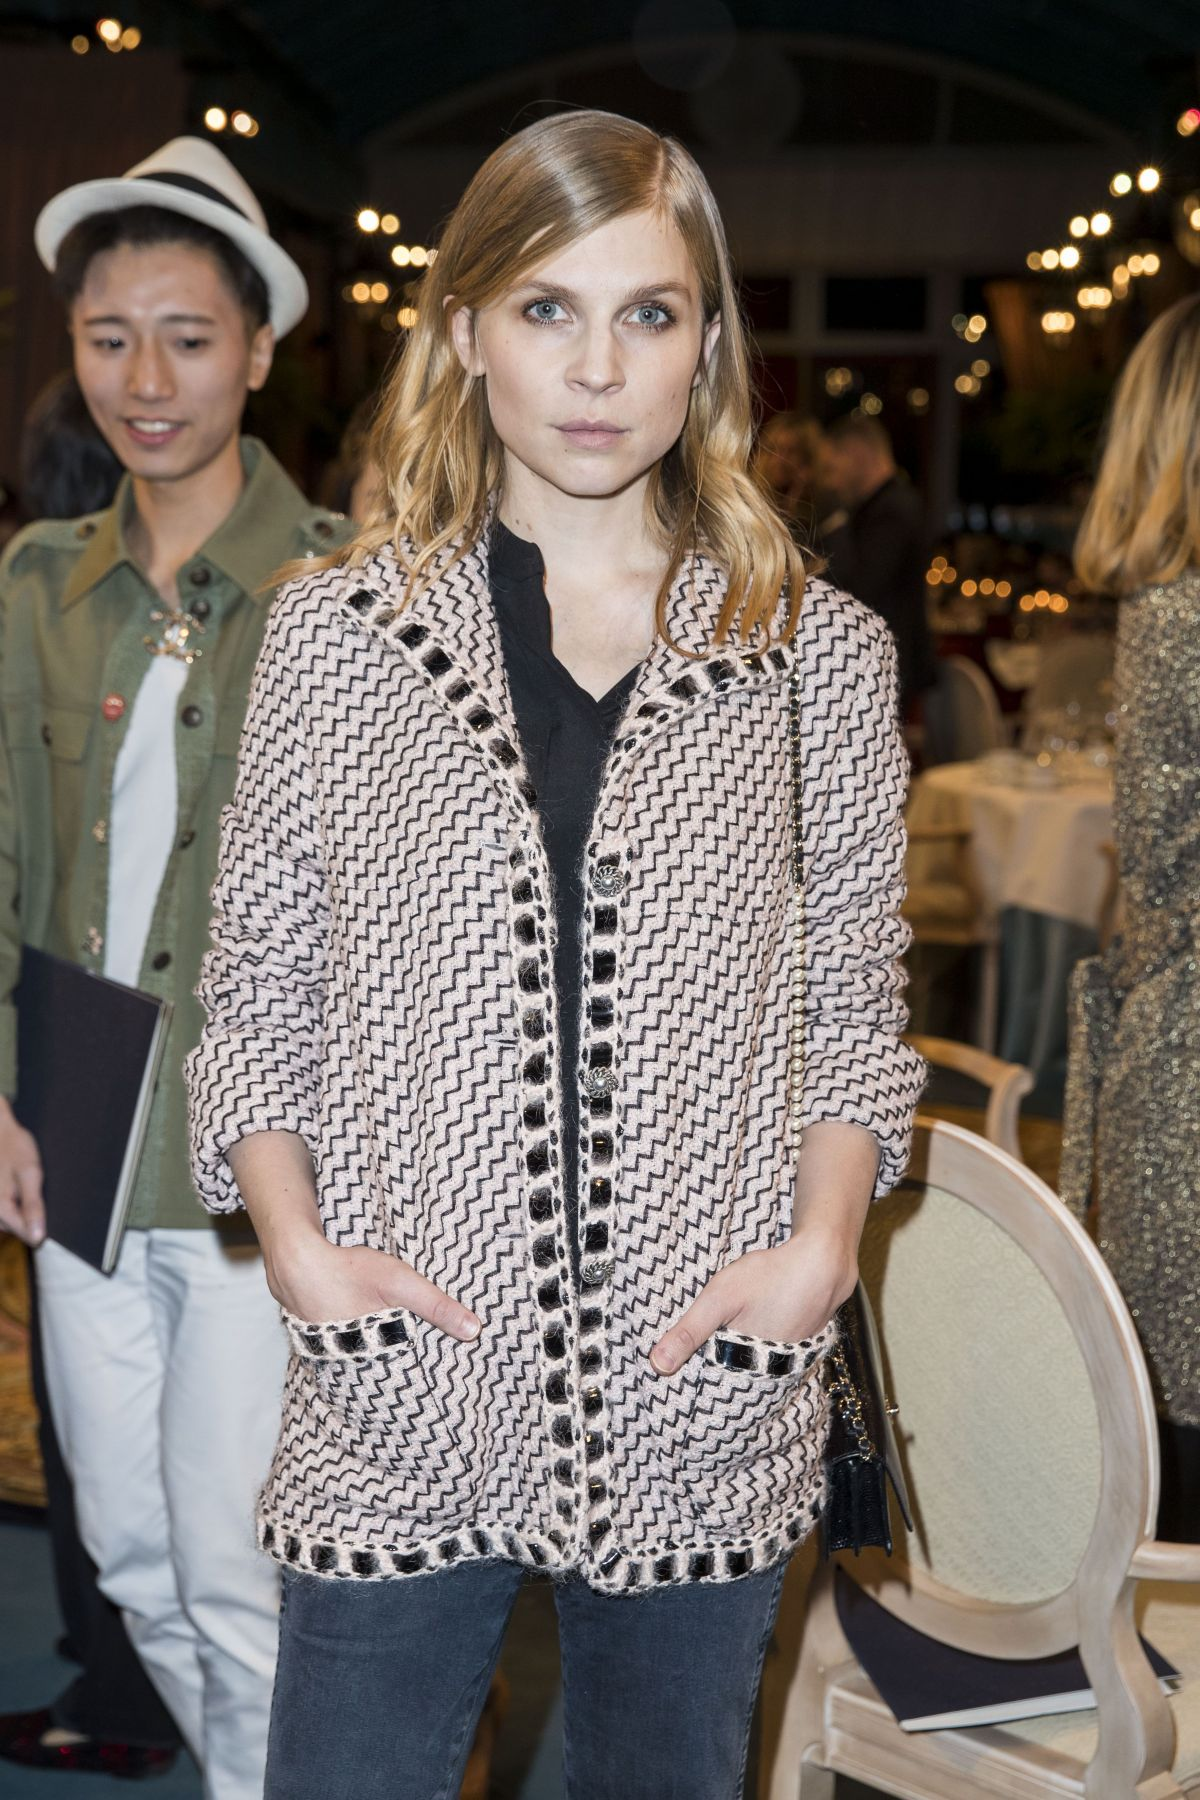 CLEMENCE POESY at Chanel Collection Des Metiers D